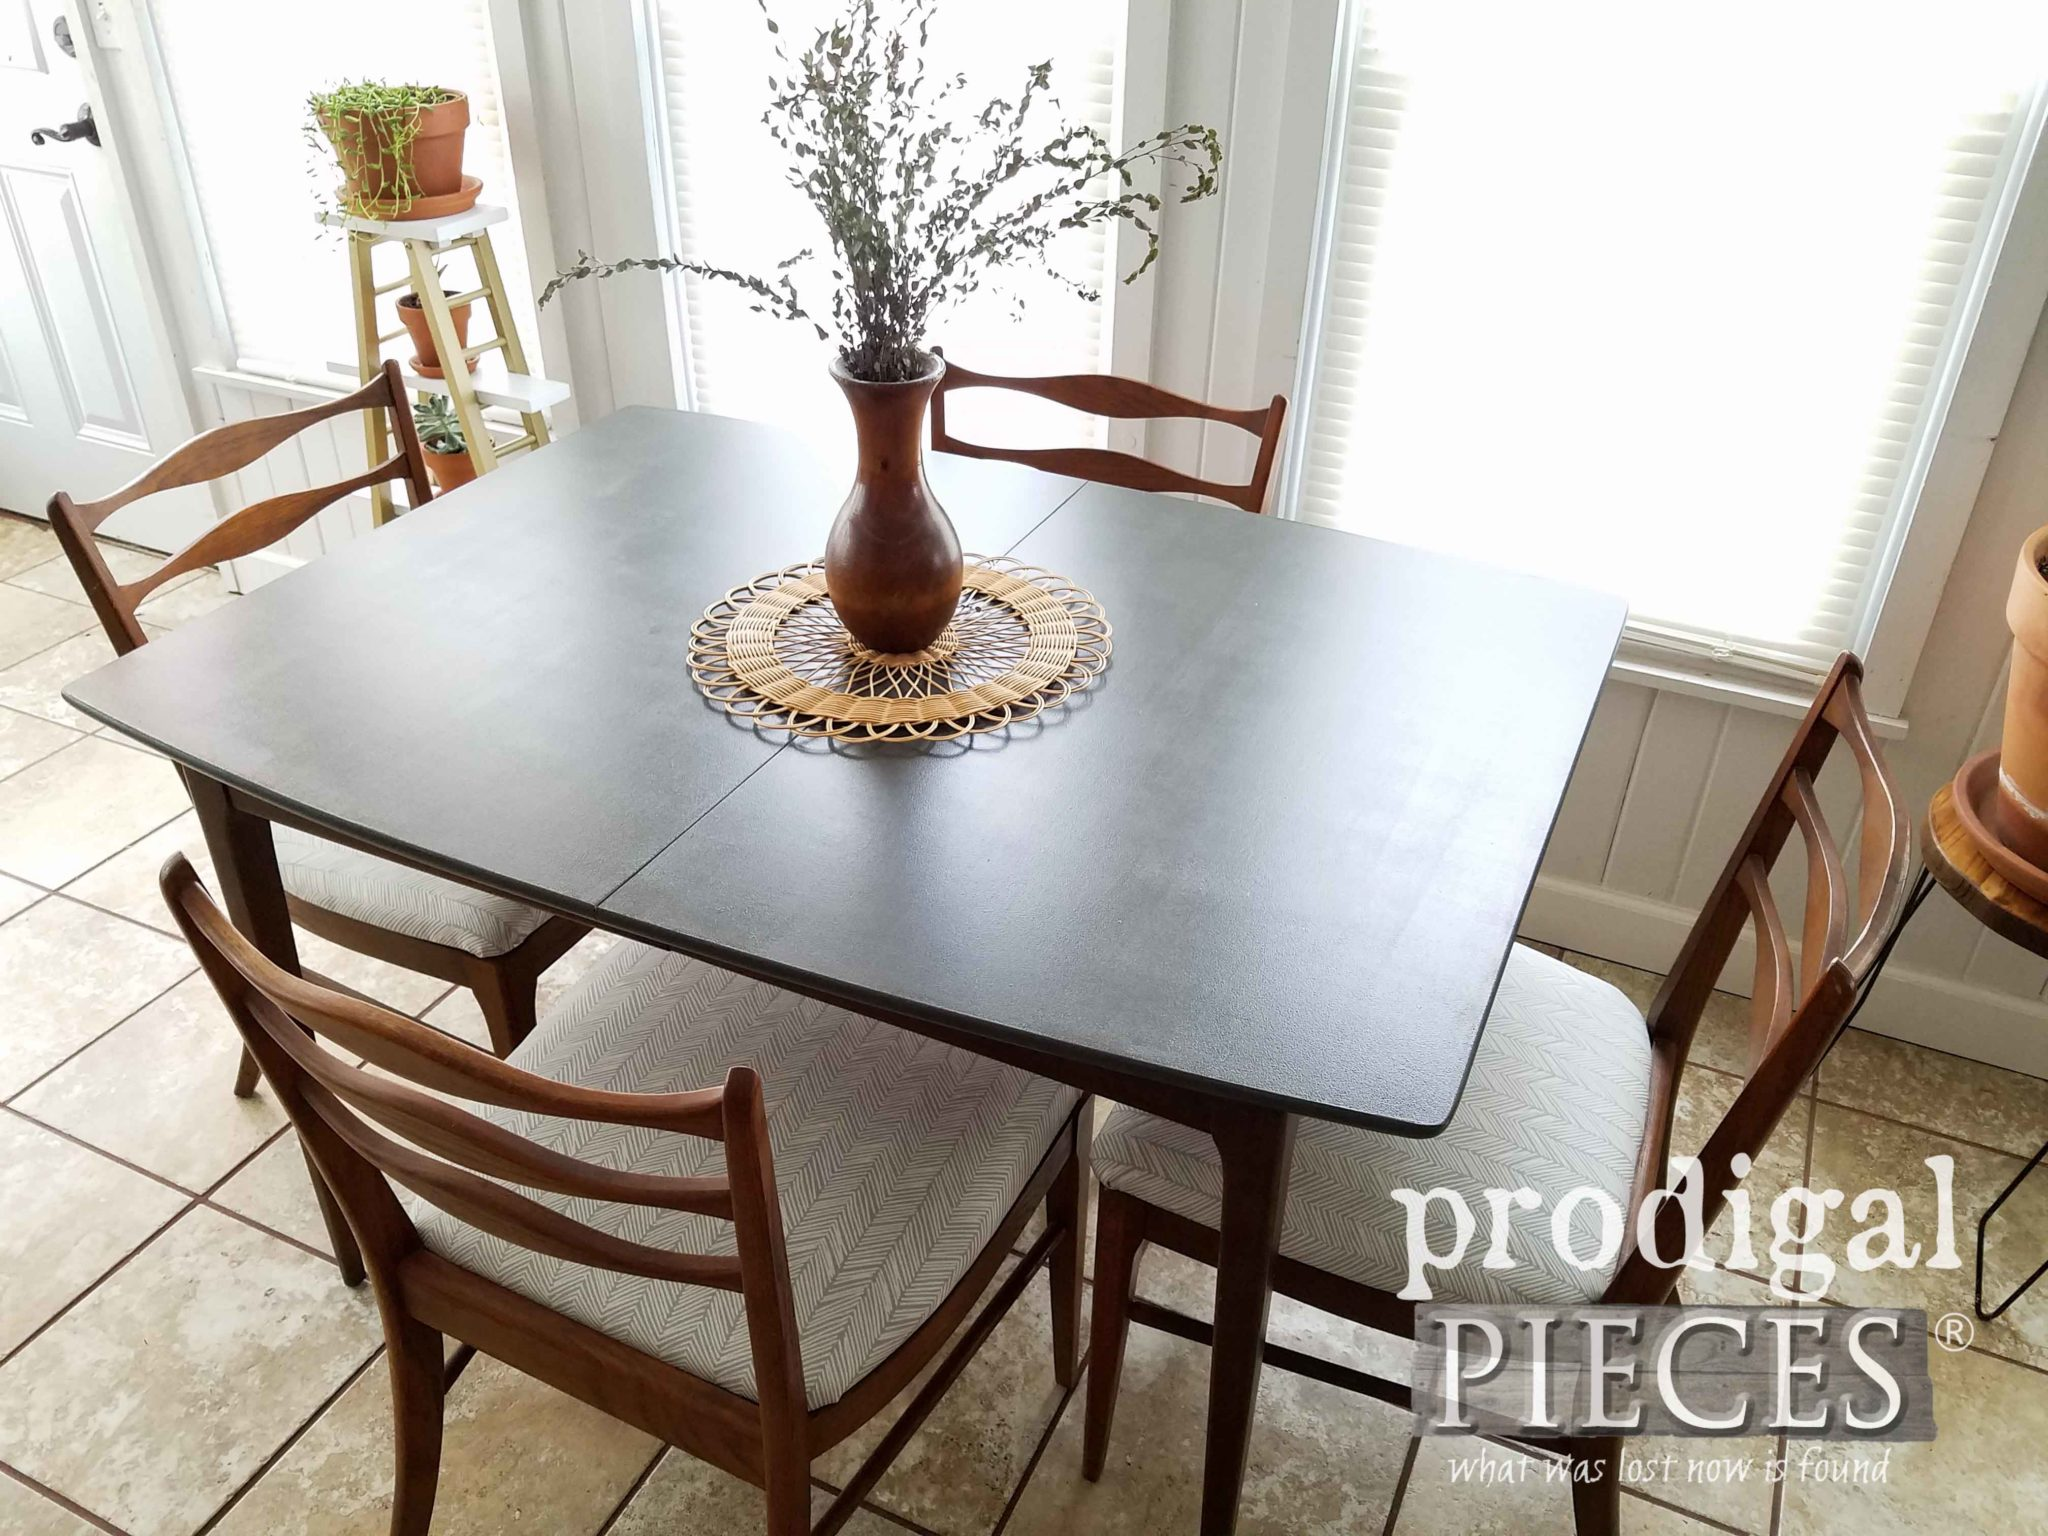 Boho Chic Mid Century Modern Dining Table set with Upholstered Chairs by Larissa of Prodigal Pieces | prodigalpieces.com